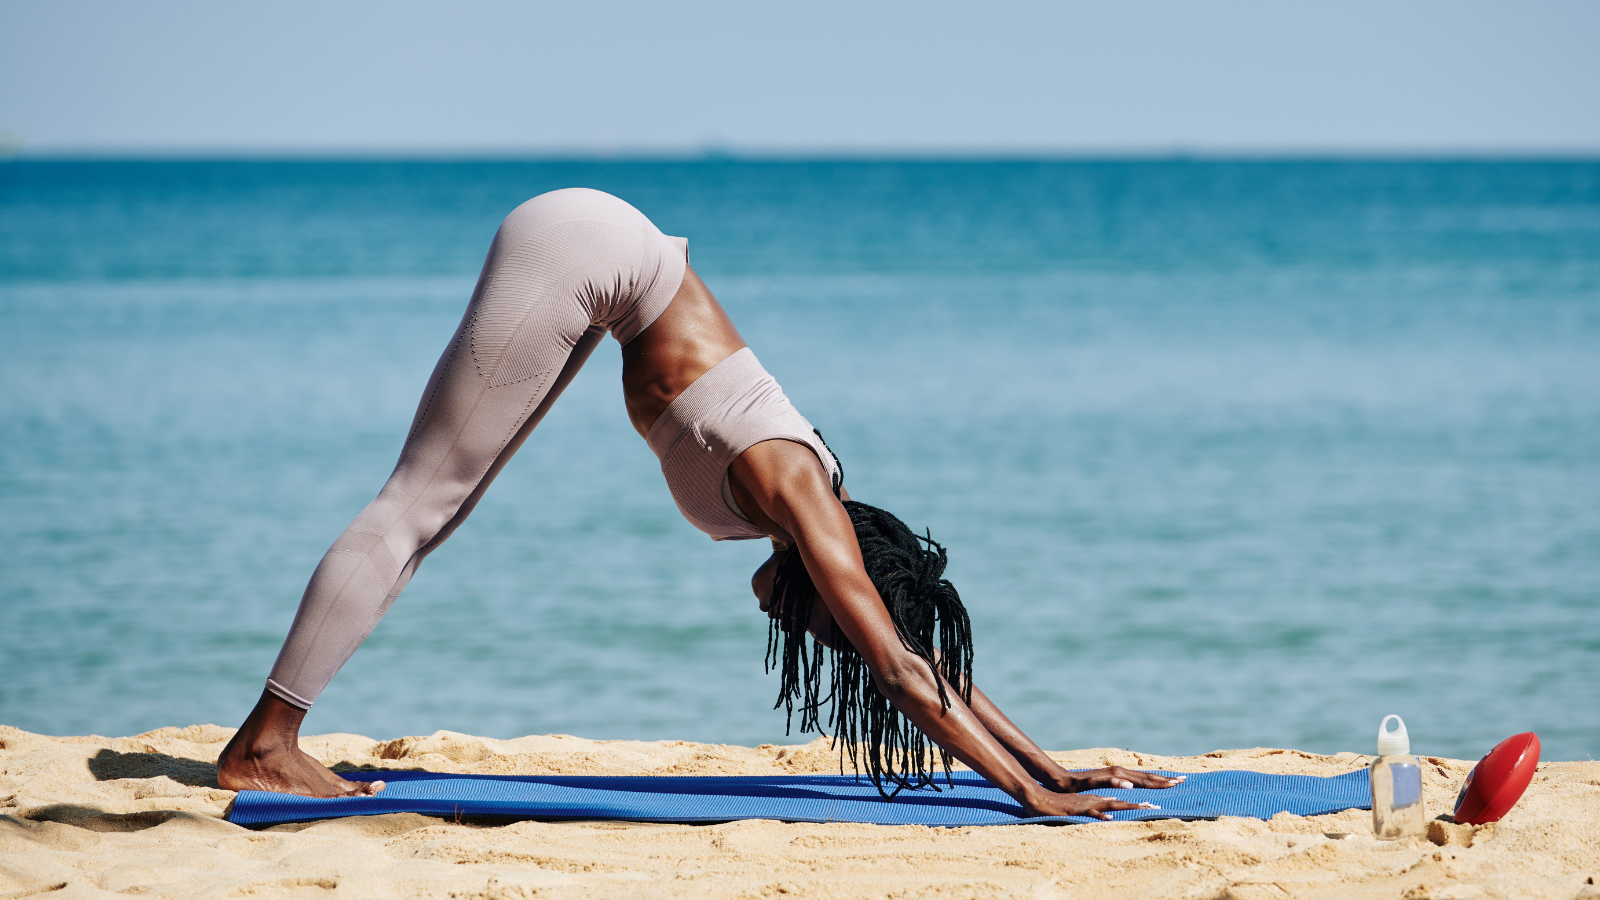 How to practice yoga to properly warm up the body and the fascia in Downward Facing Dog Pose (Sanskrit name: Adho Mukha Svanasana)